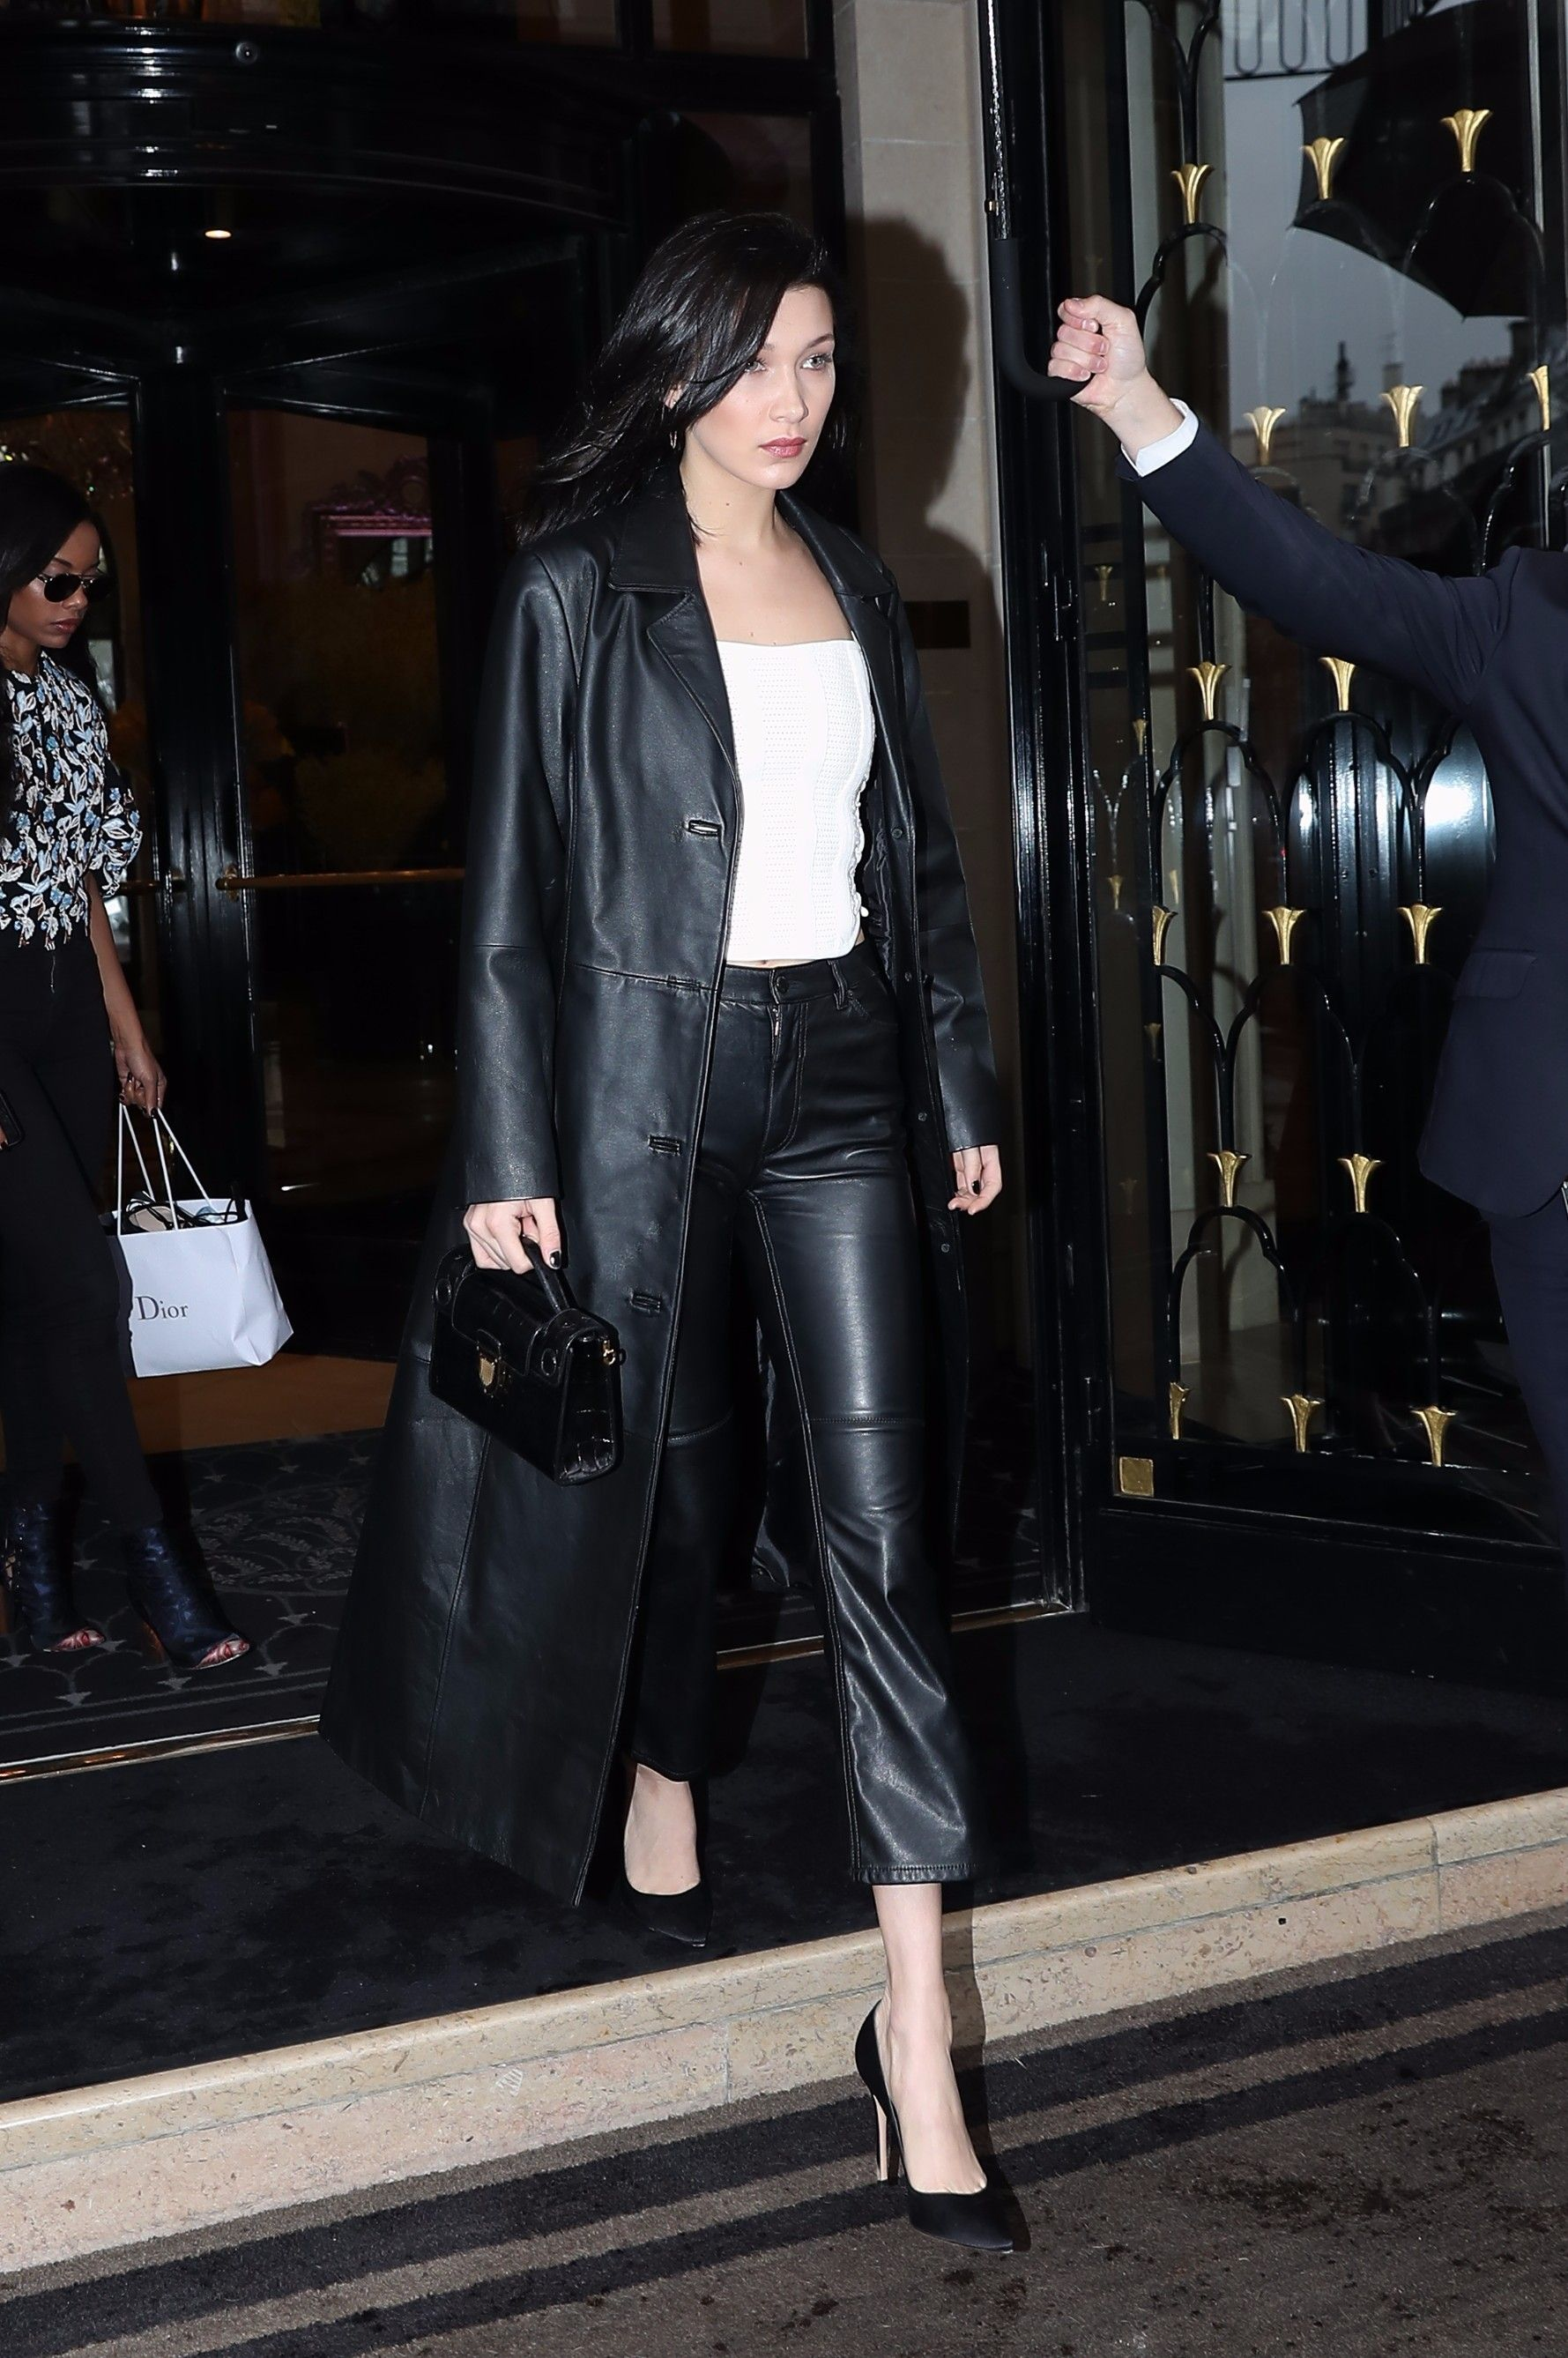 Bella Hadid Leaving Her Hotel Casual Style Outfits Long Leather Coat Black Leather Pants [ jpg ]